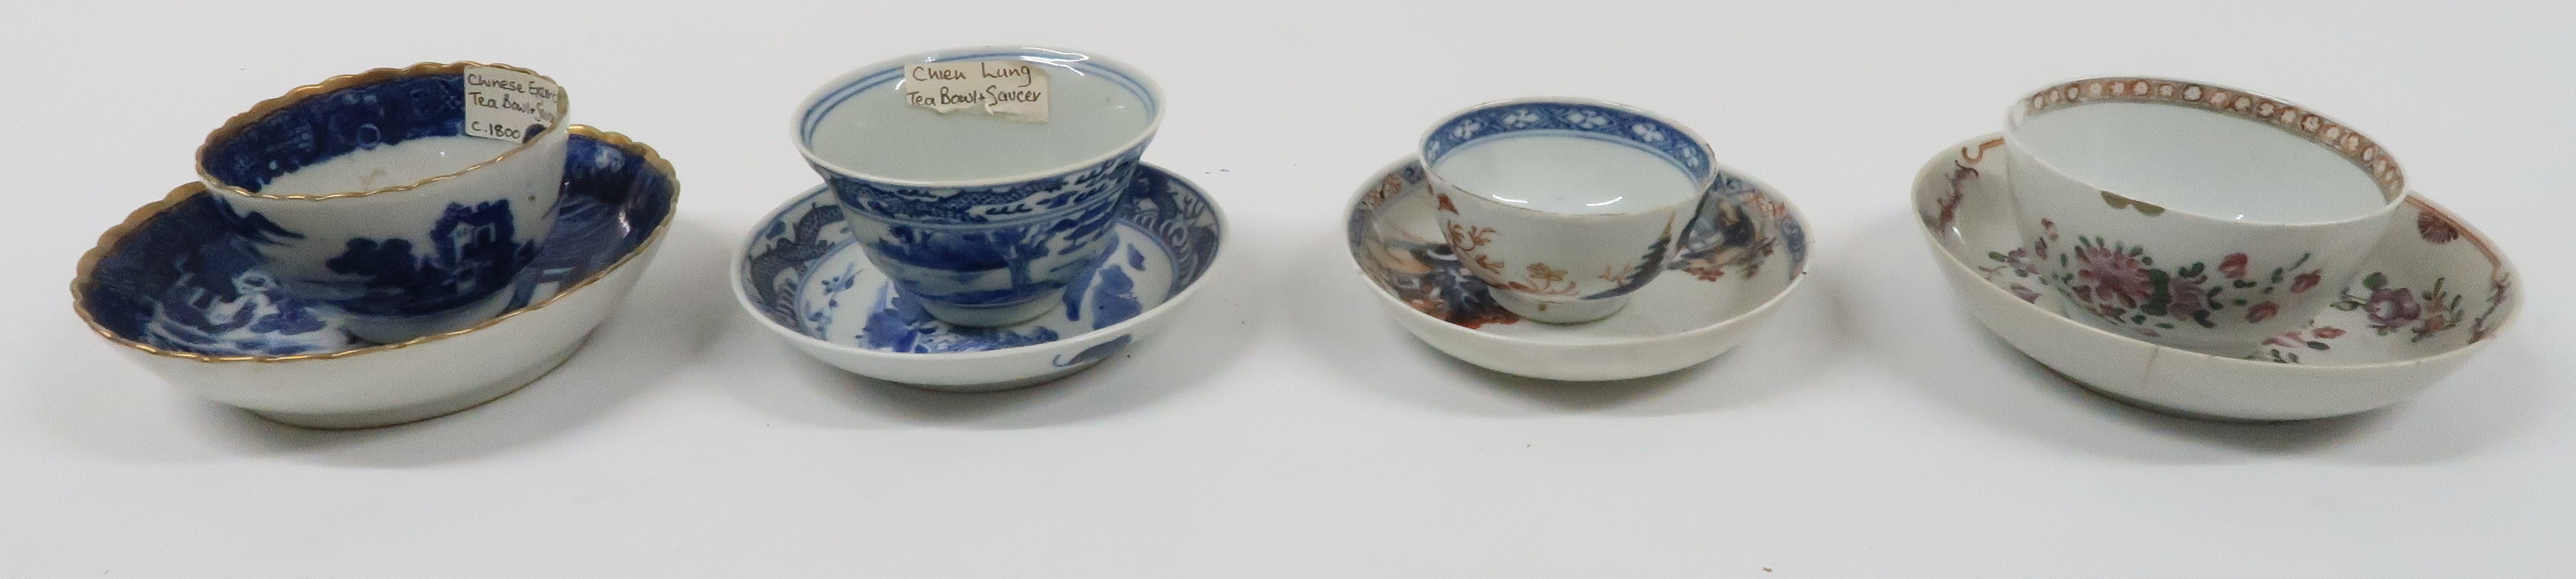 A COLLECTION OF CHINESE EXPORT TEAWARES and others including famille rose, Chien Lung, blue and - Image 14 of 22